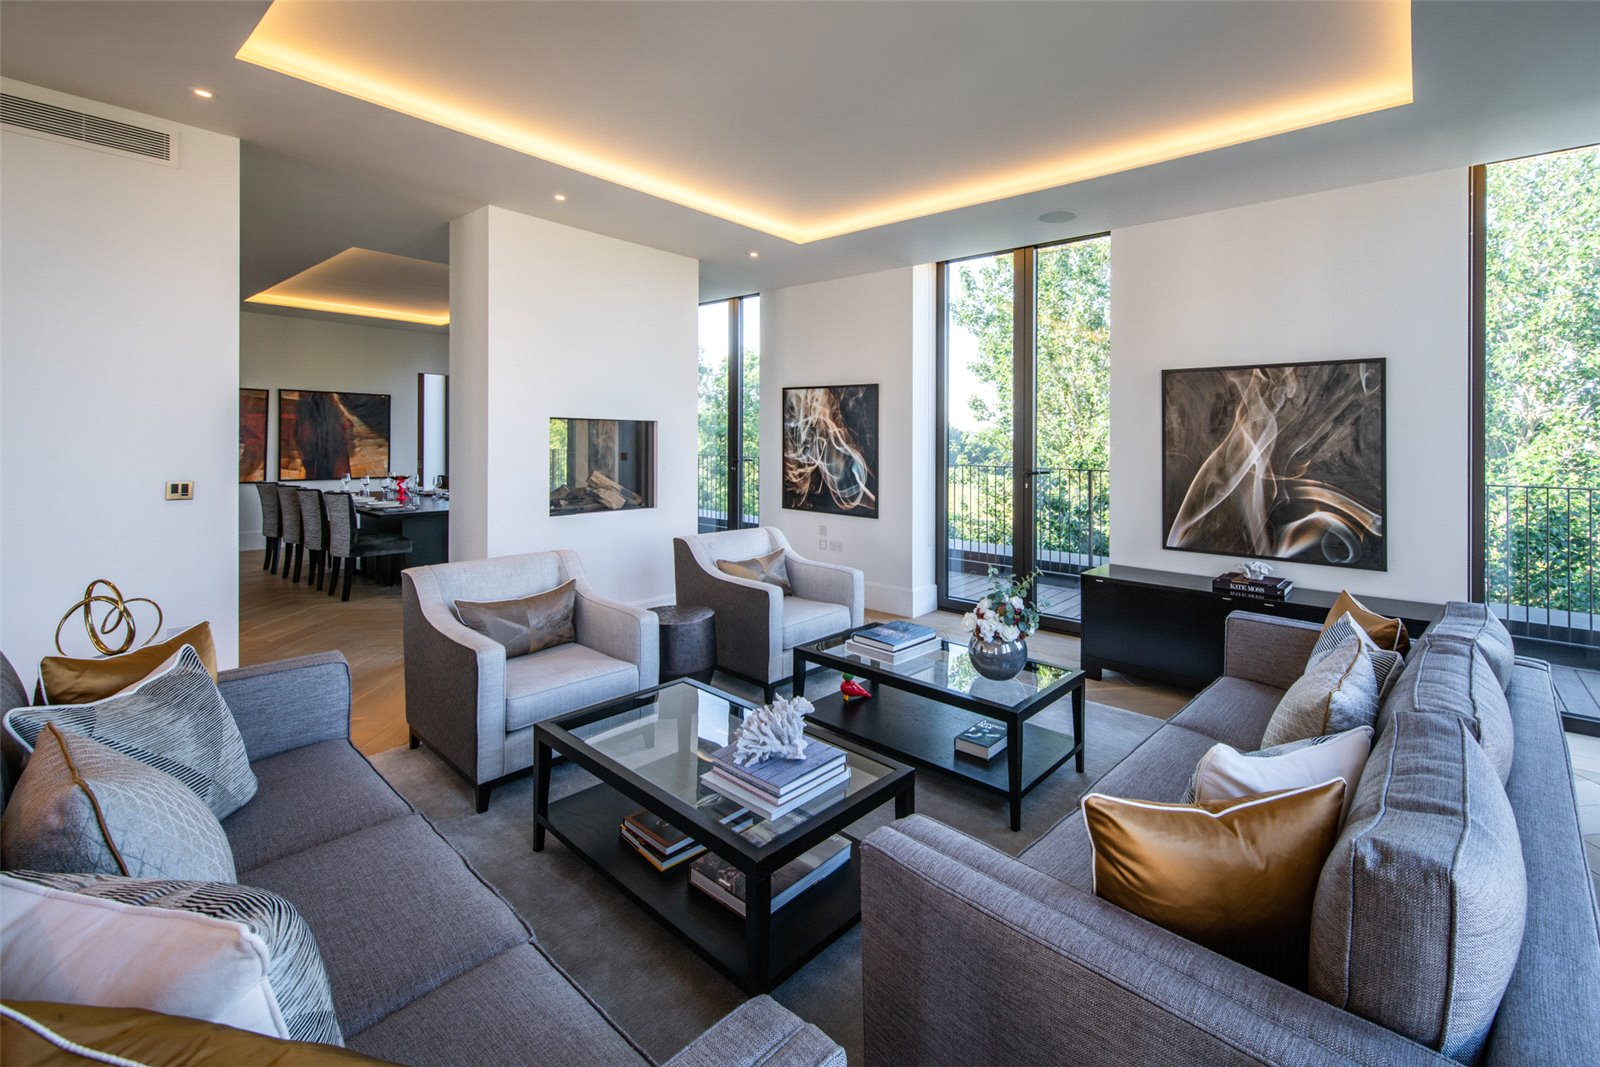 Apartment for Sale at St Edmund's Terrace, St John's Wood, London, NW8 St Edmund's Terrace, St John's Wood, London, NW8